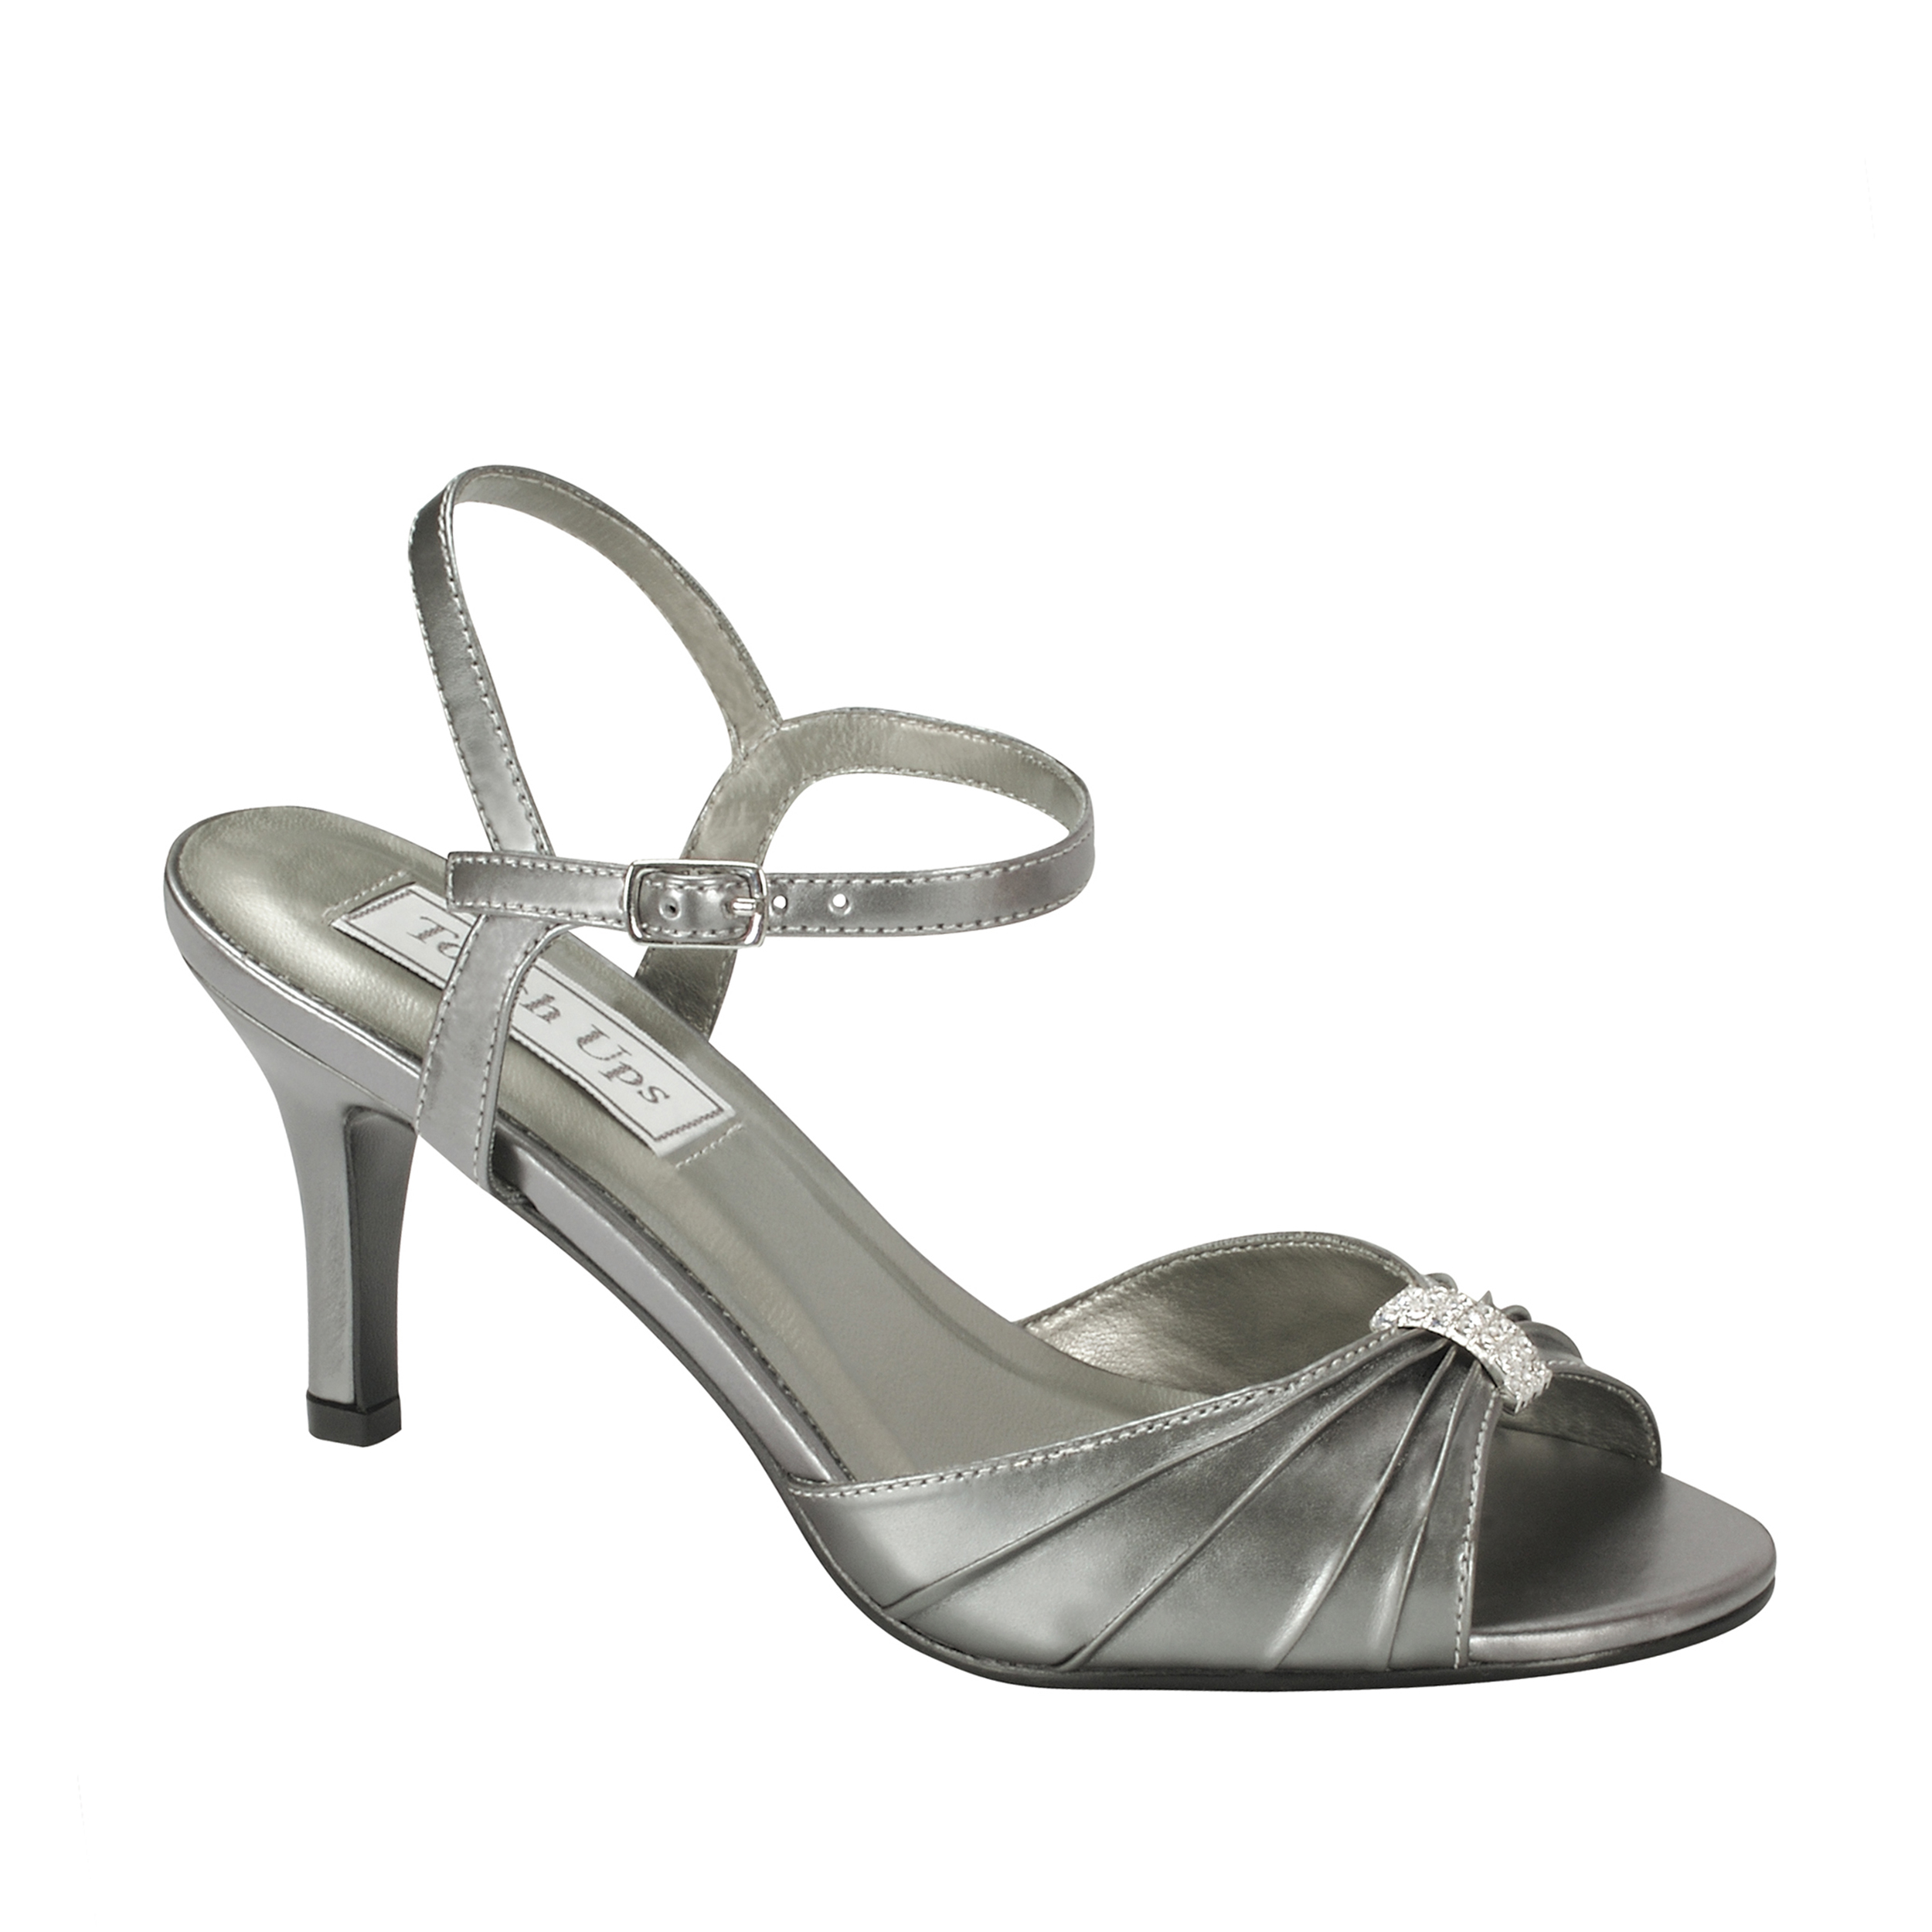 Touch Ups Womens Asher Ankle Wrap Sandal,Gunmetal,8.5 M US